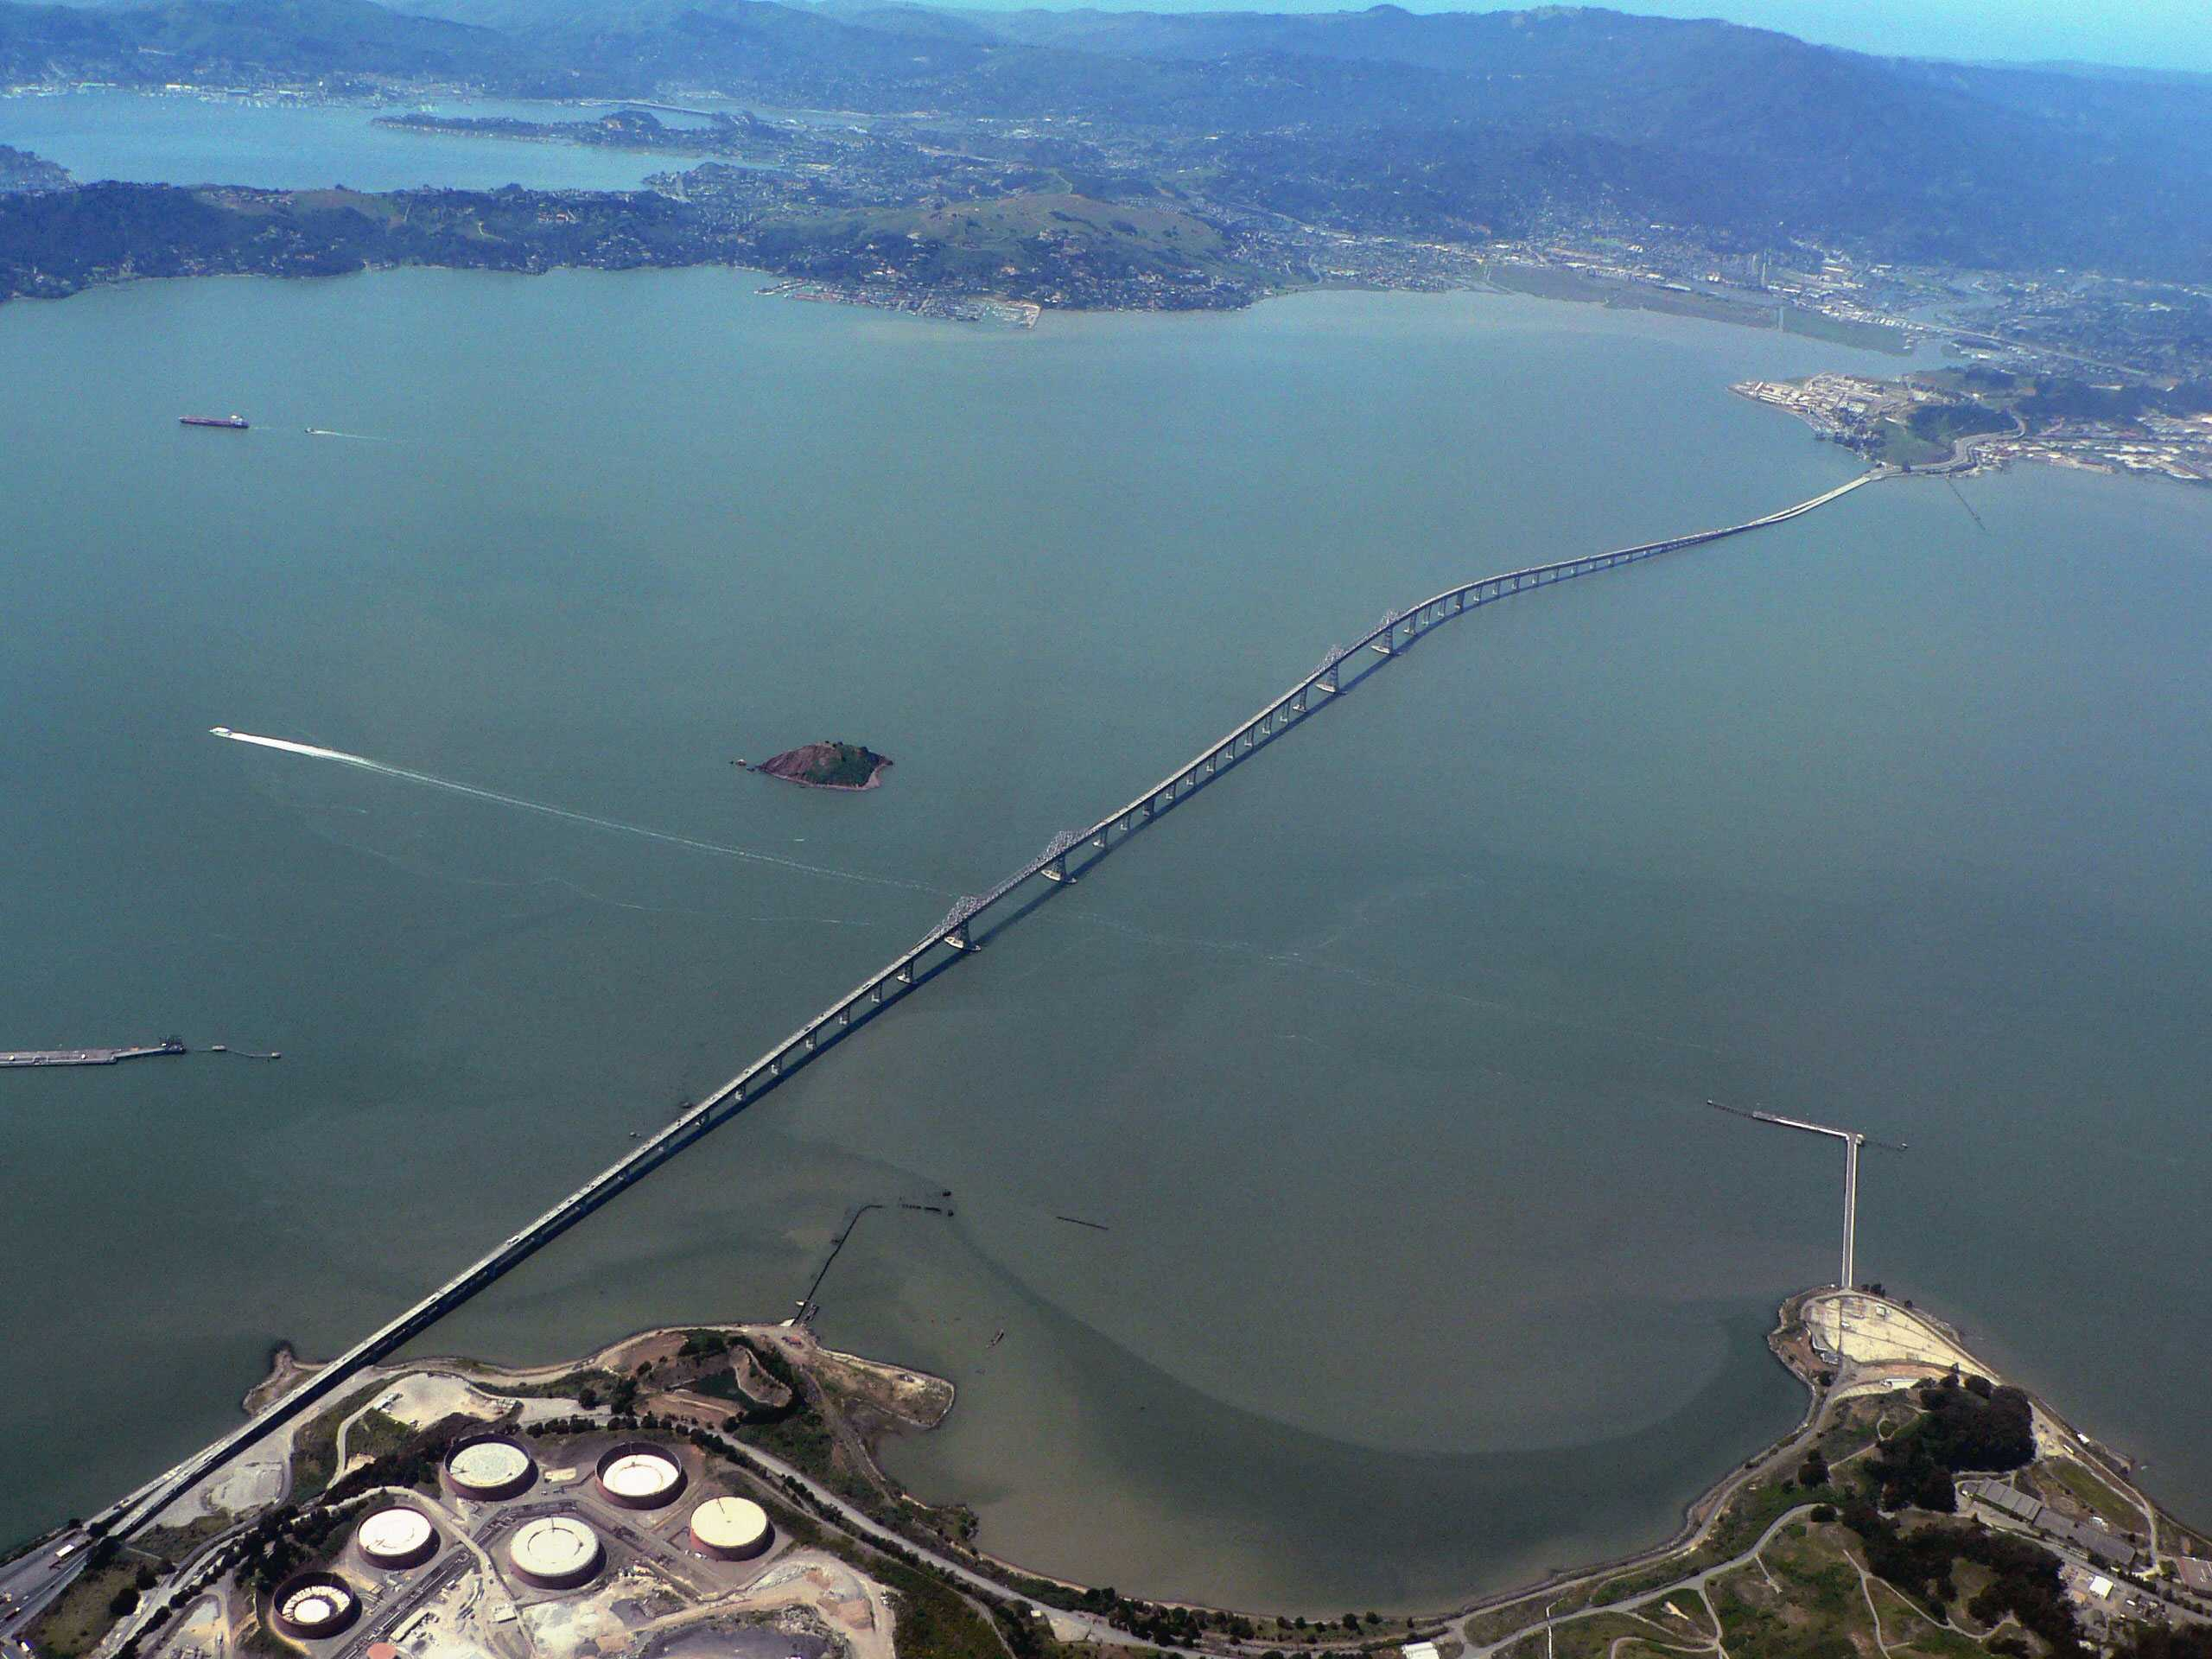 Update: Falling debris creates traffic standstill on Richmond-San Rafael Bridge